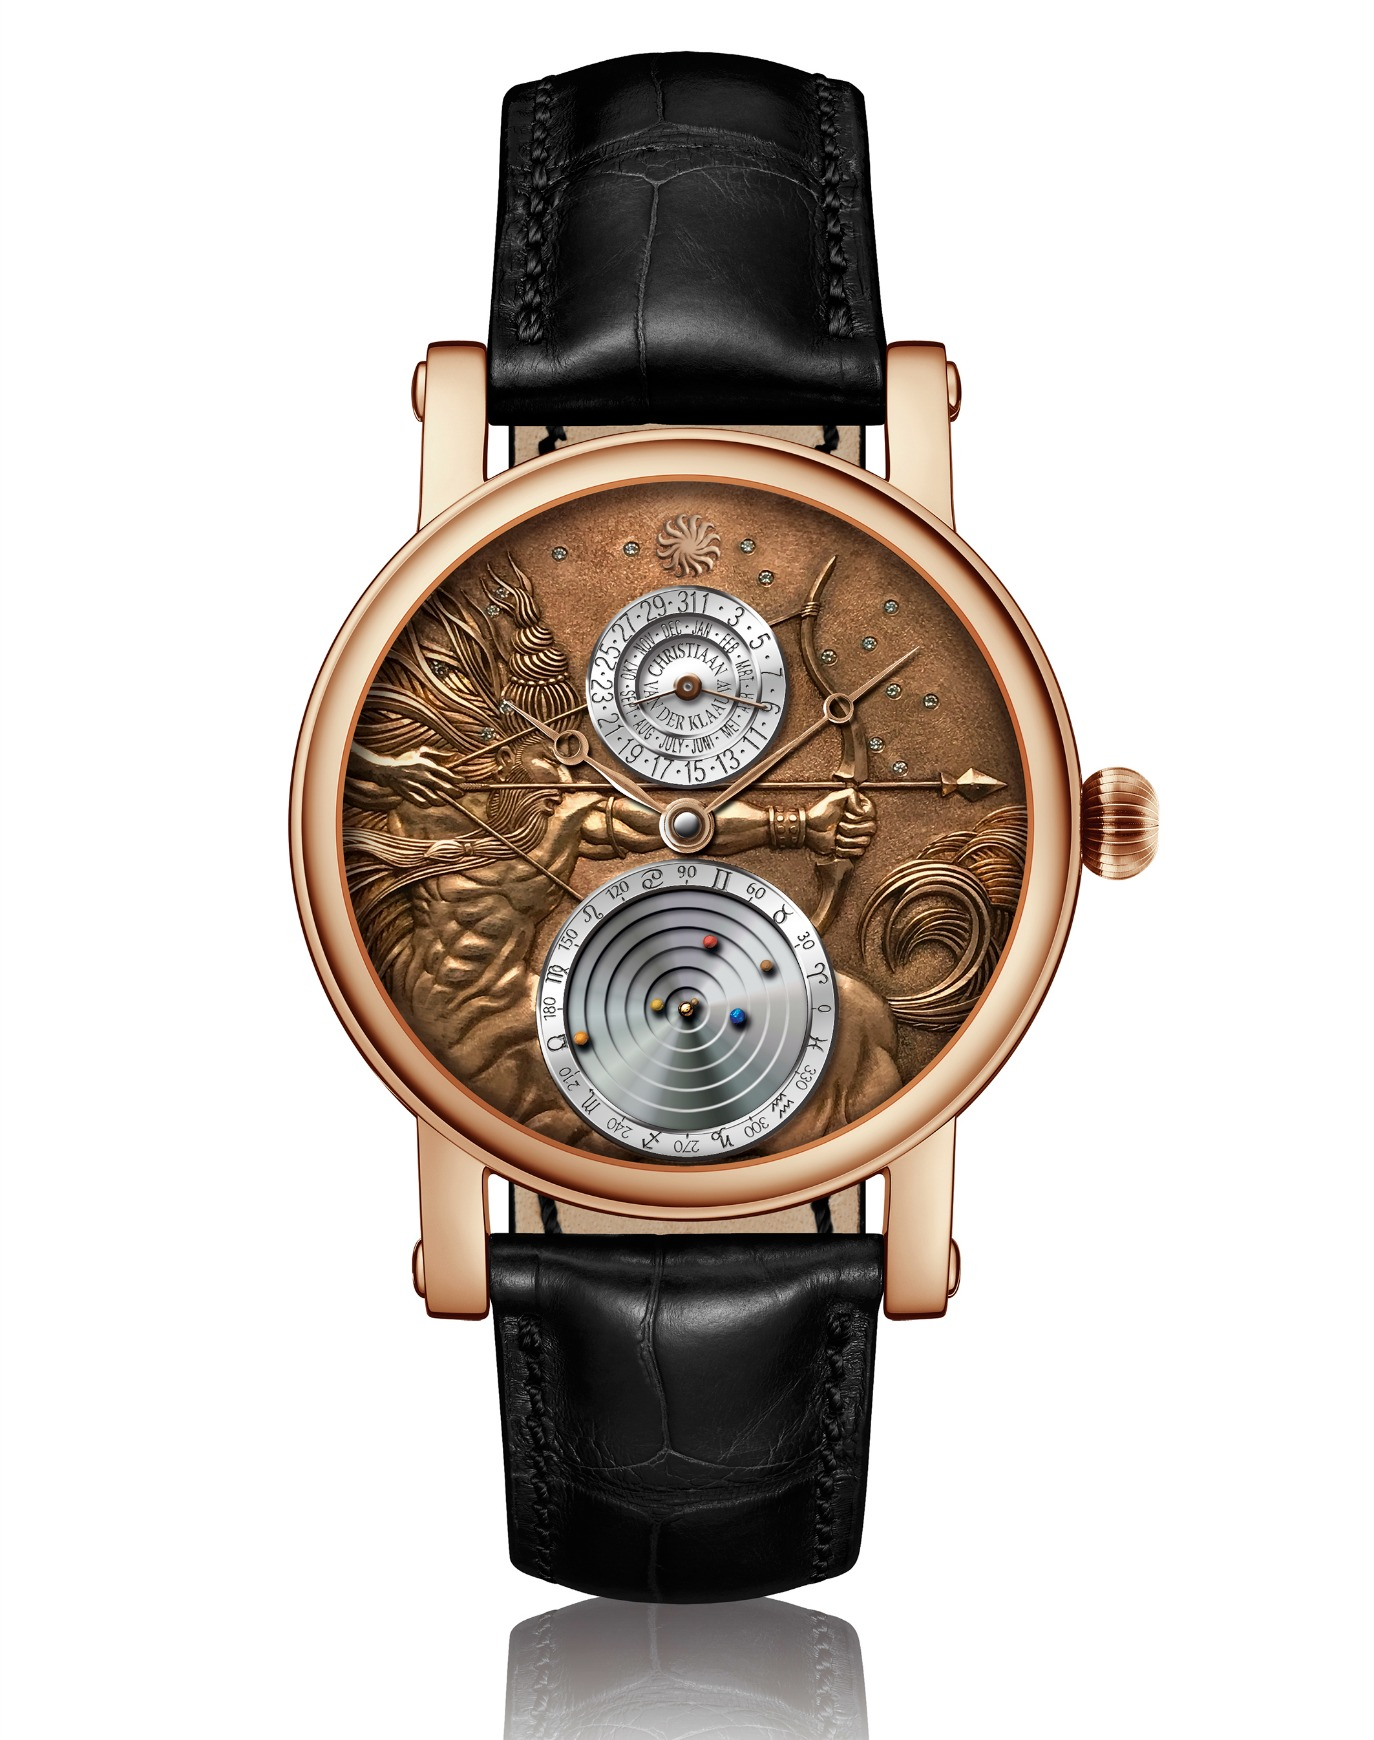 Christiaan van der Klaauw astronomical watch